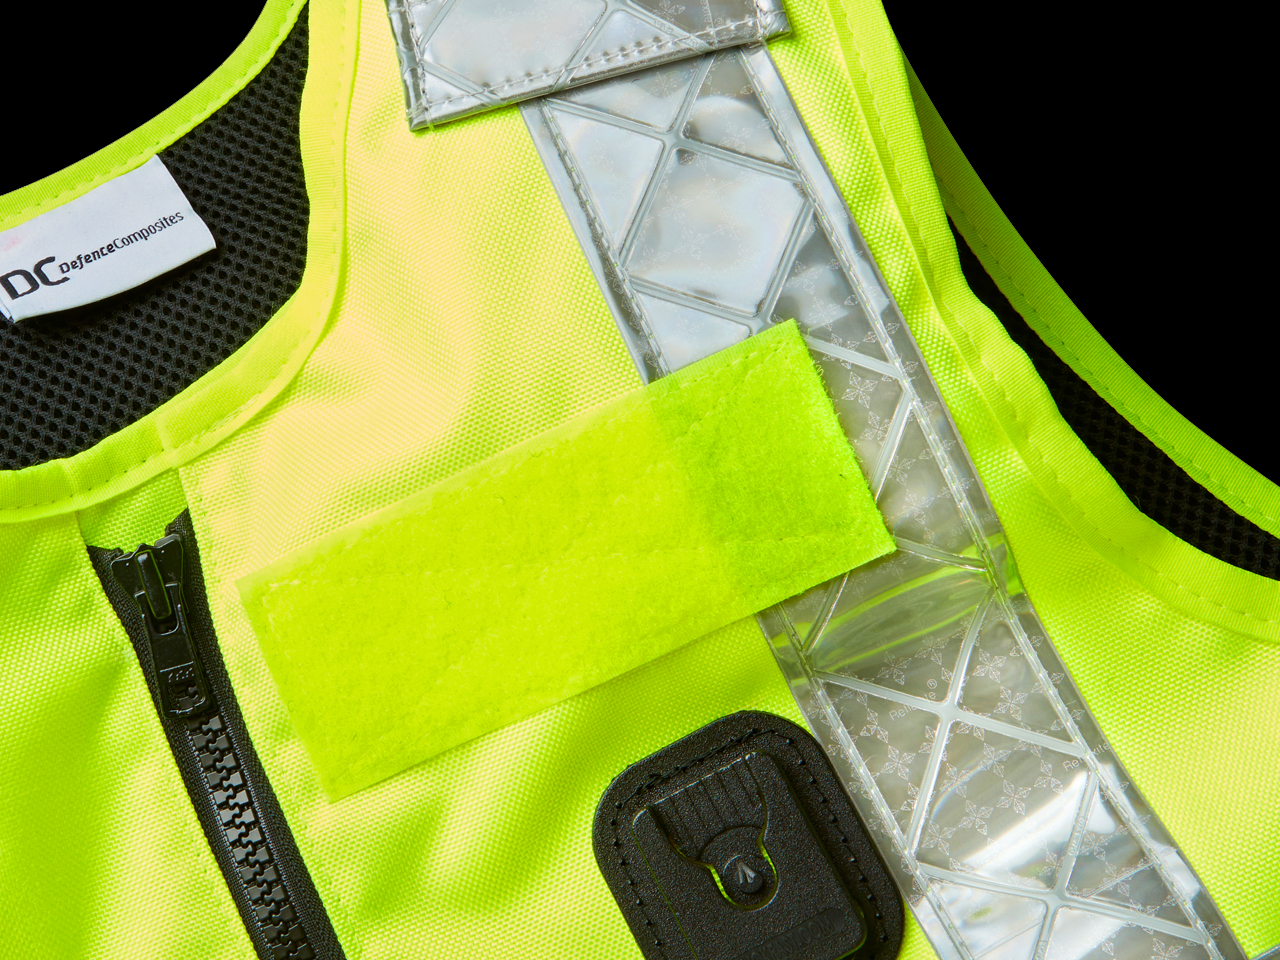 Stab Vest Manufacturer Features in Channel 5 Show 'Shoplifters & Scammers'